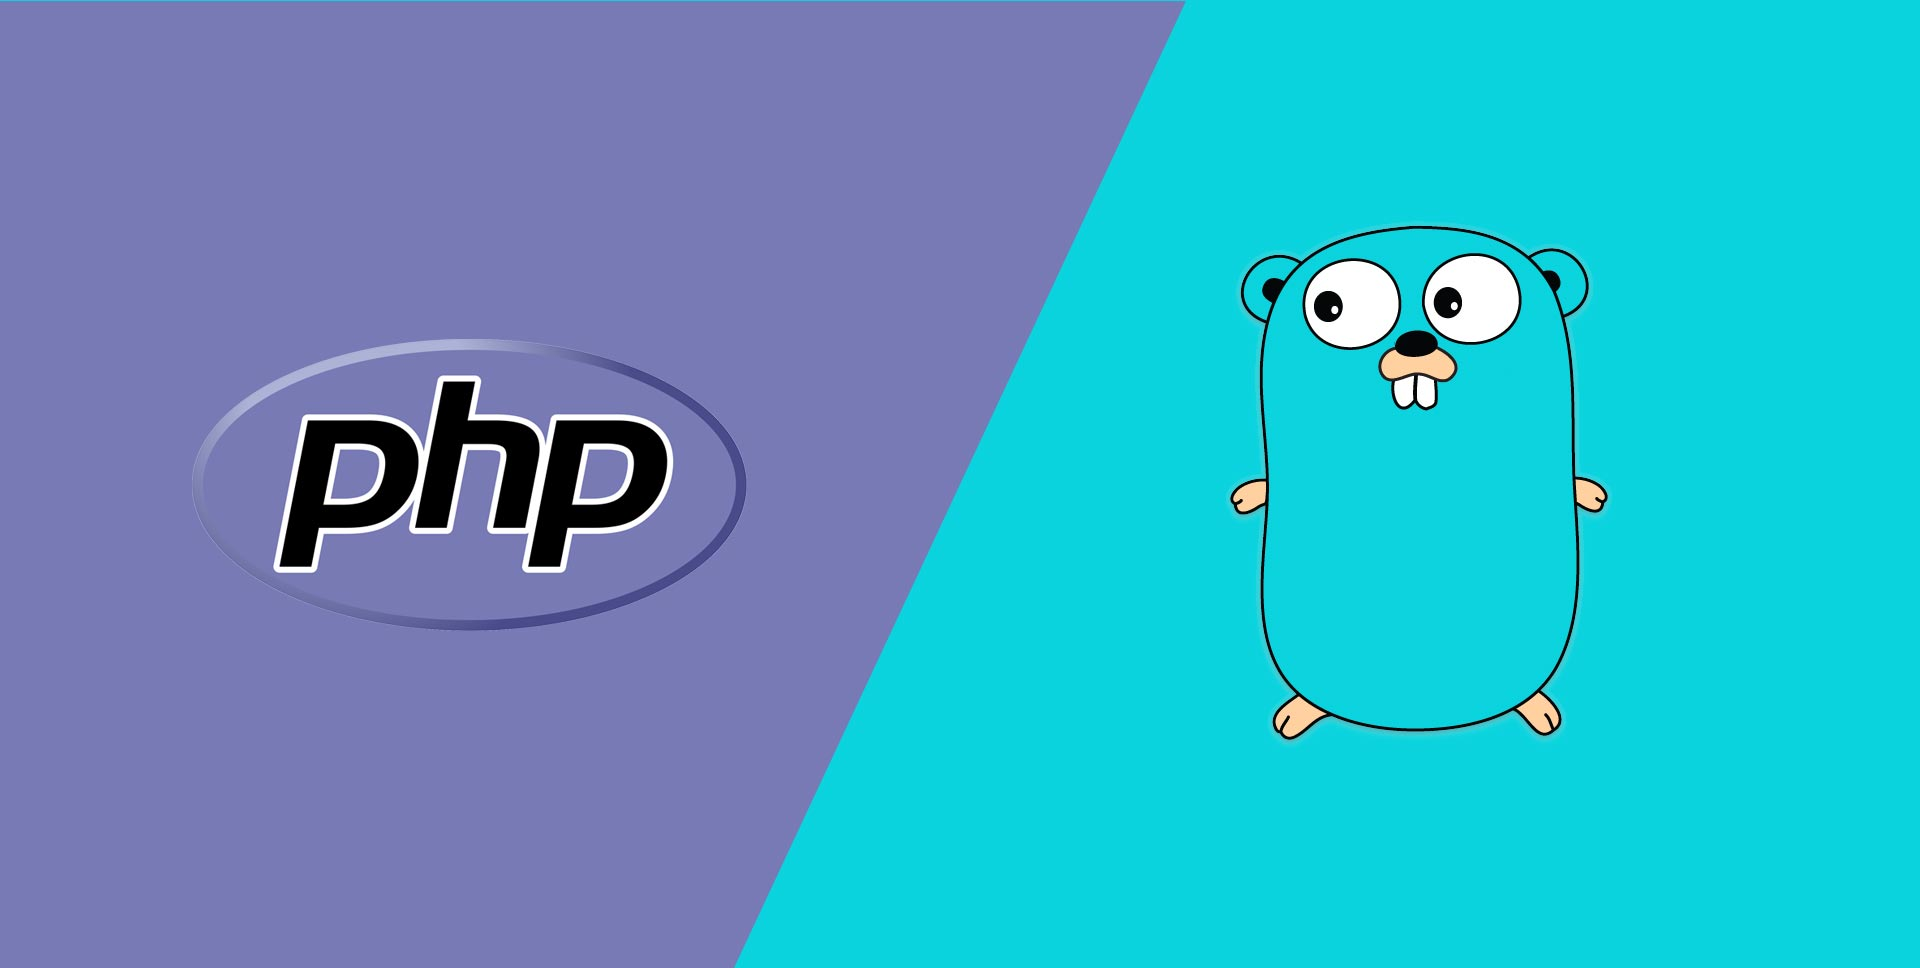 Illustrations of the PHP and Go programming languages logos